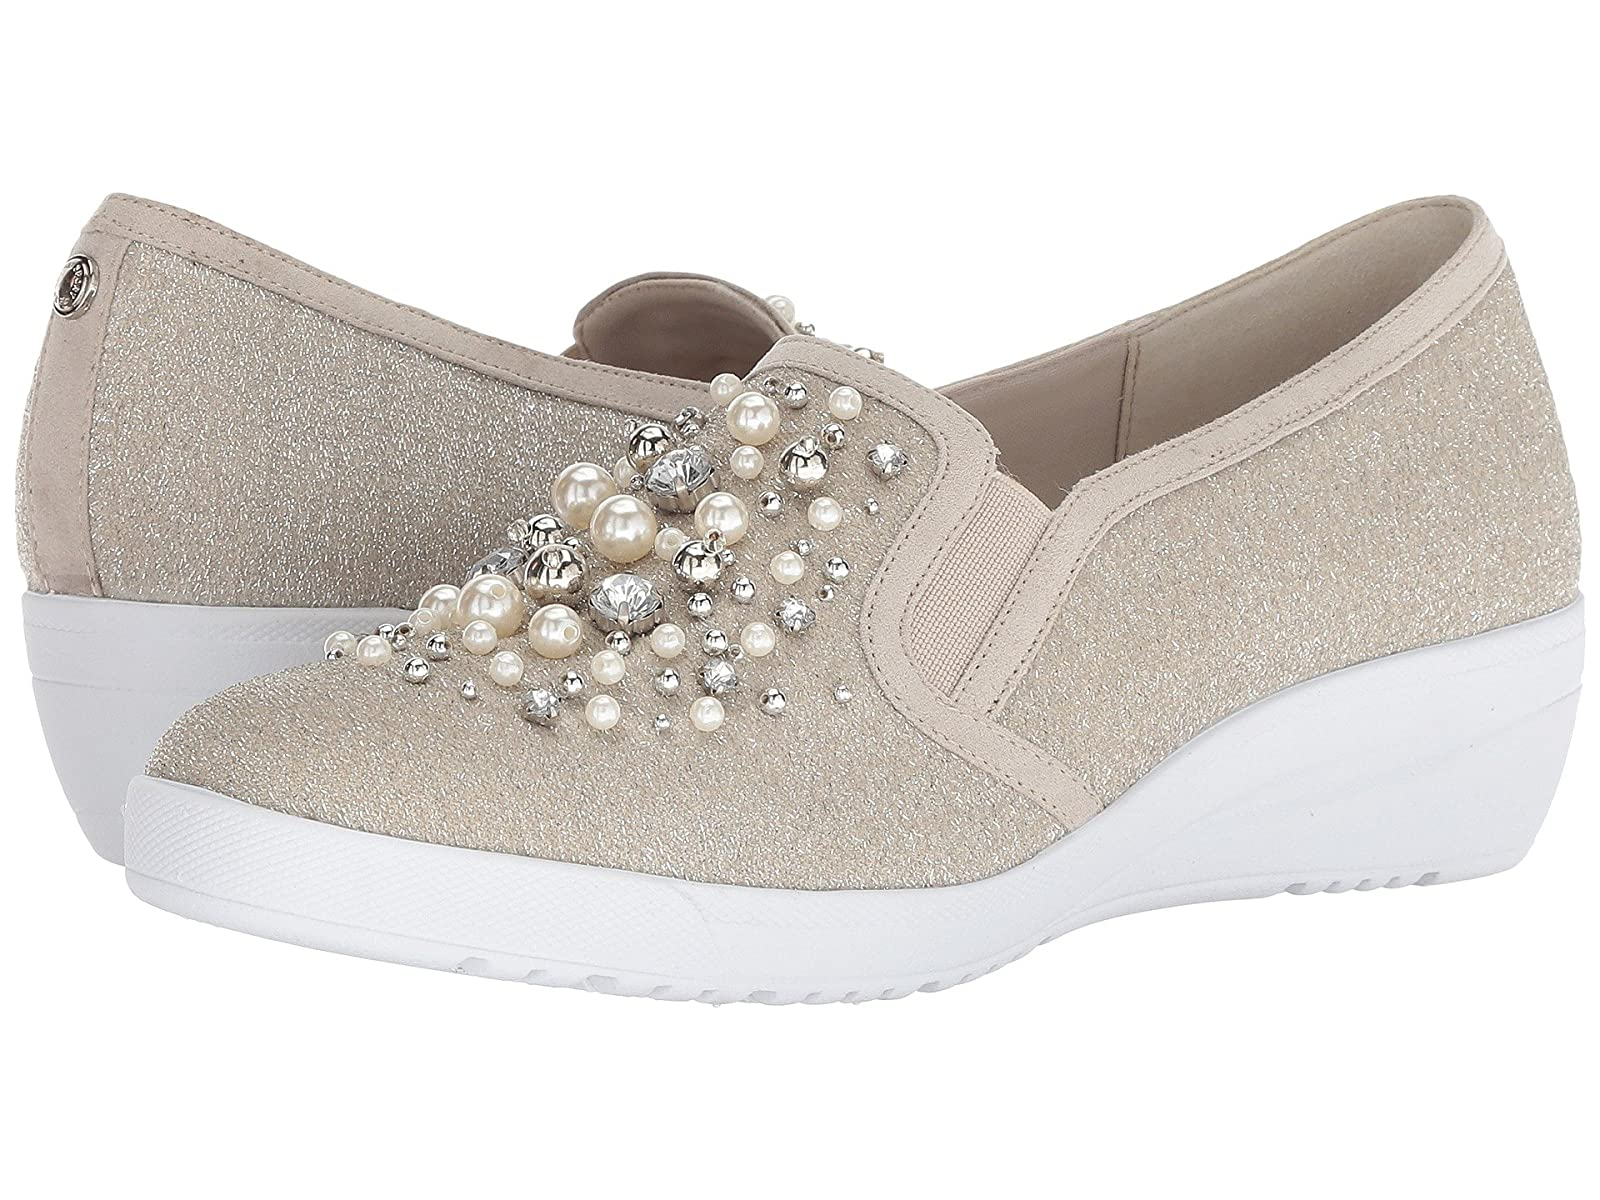 Anne Klein YevellaAtmospheric grades have affordable shoes